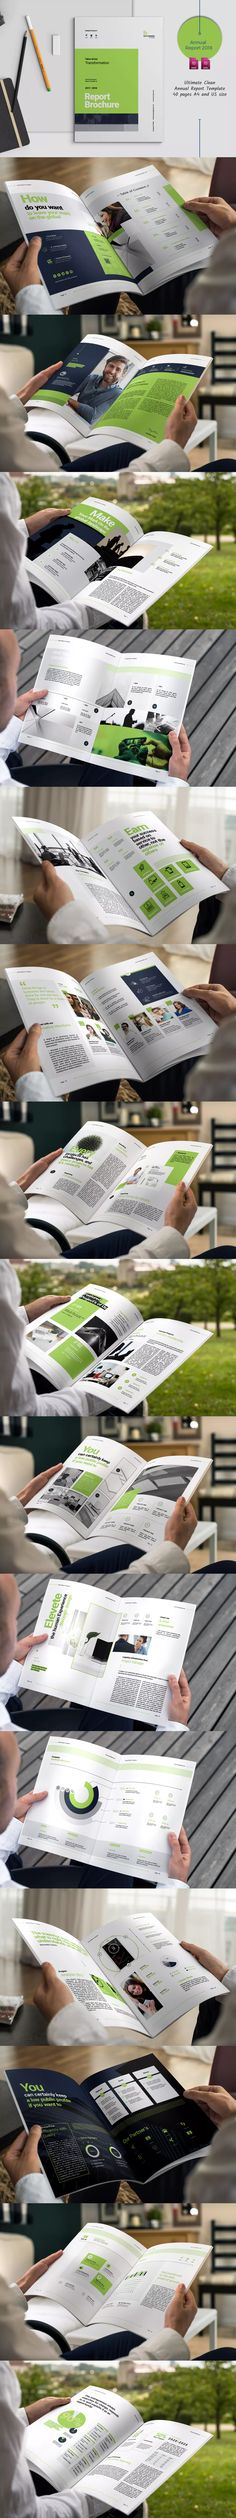 Annual Report Template InDesign INDD - A4 and US Letter SIze